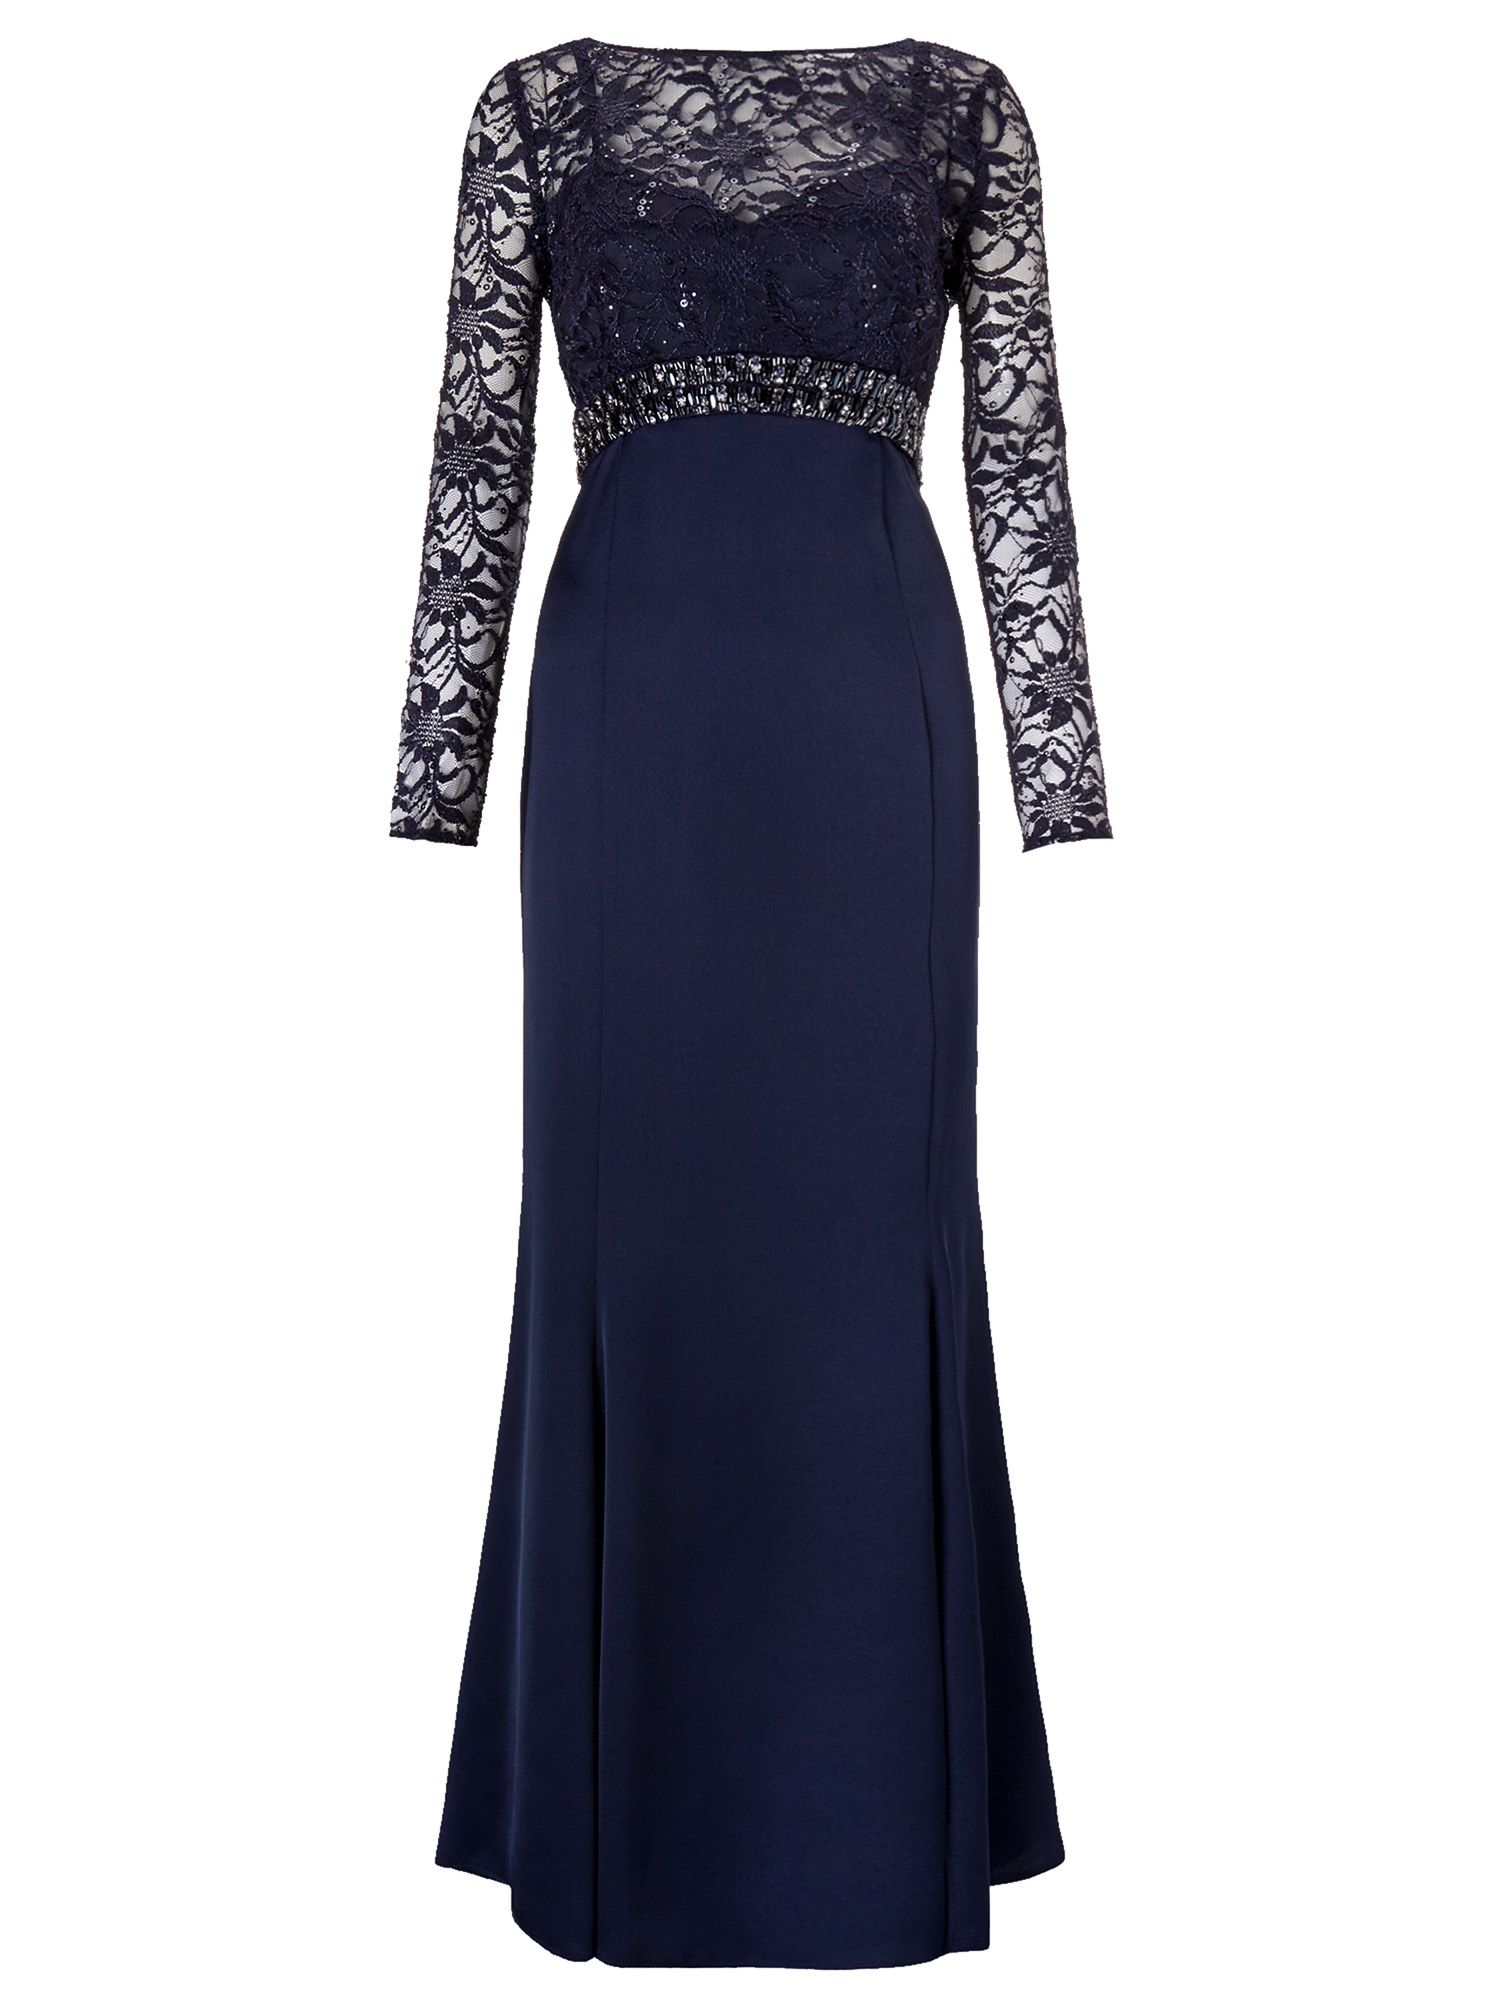 Ariella Sloane Maxi Dress With Lace Sleeves, Navy